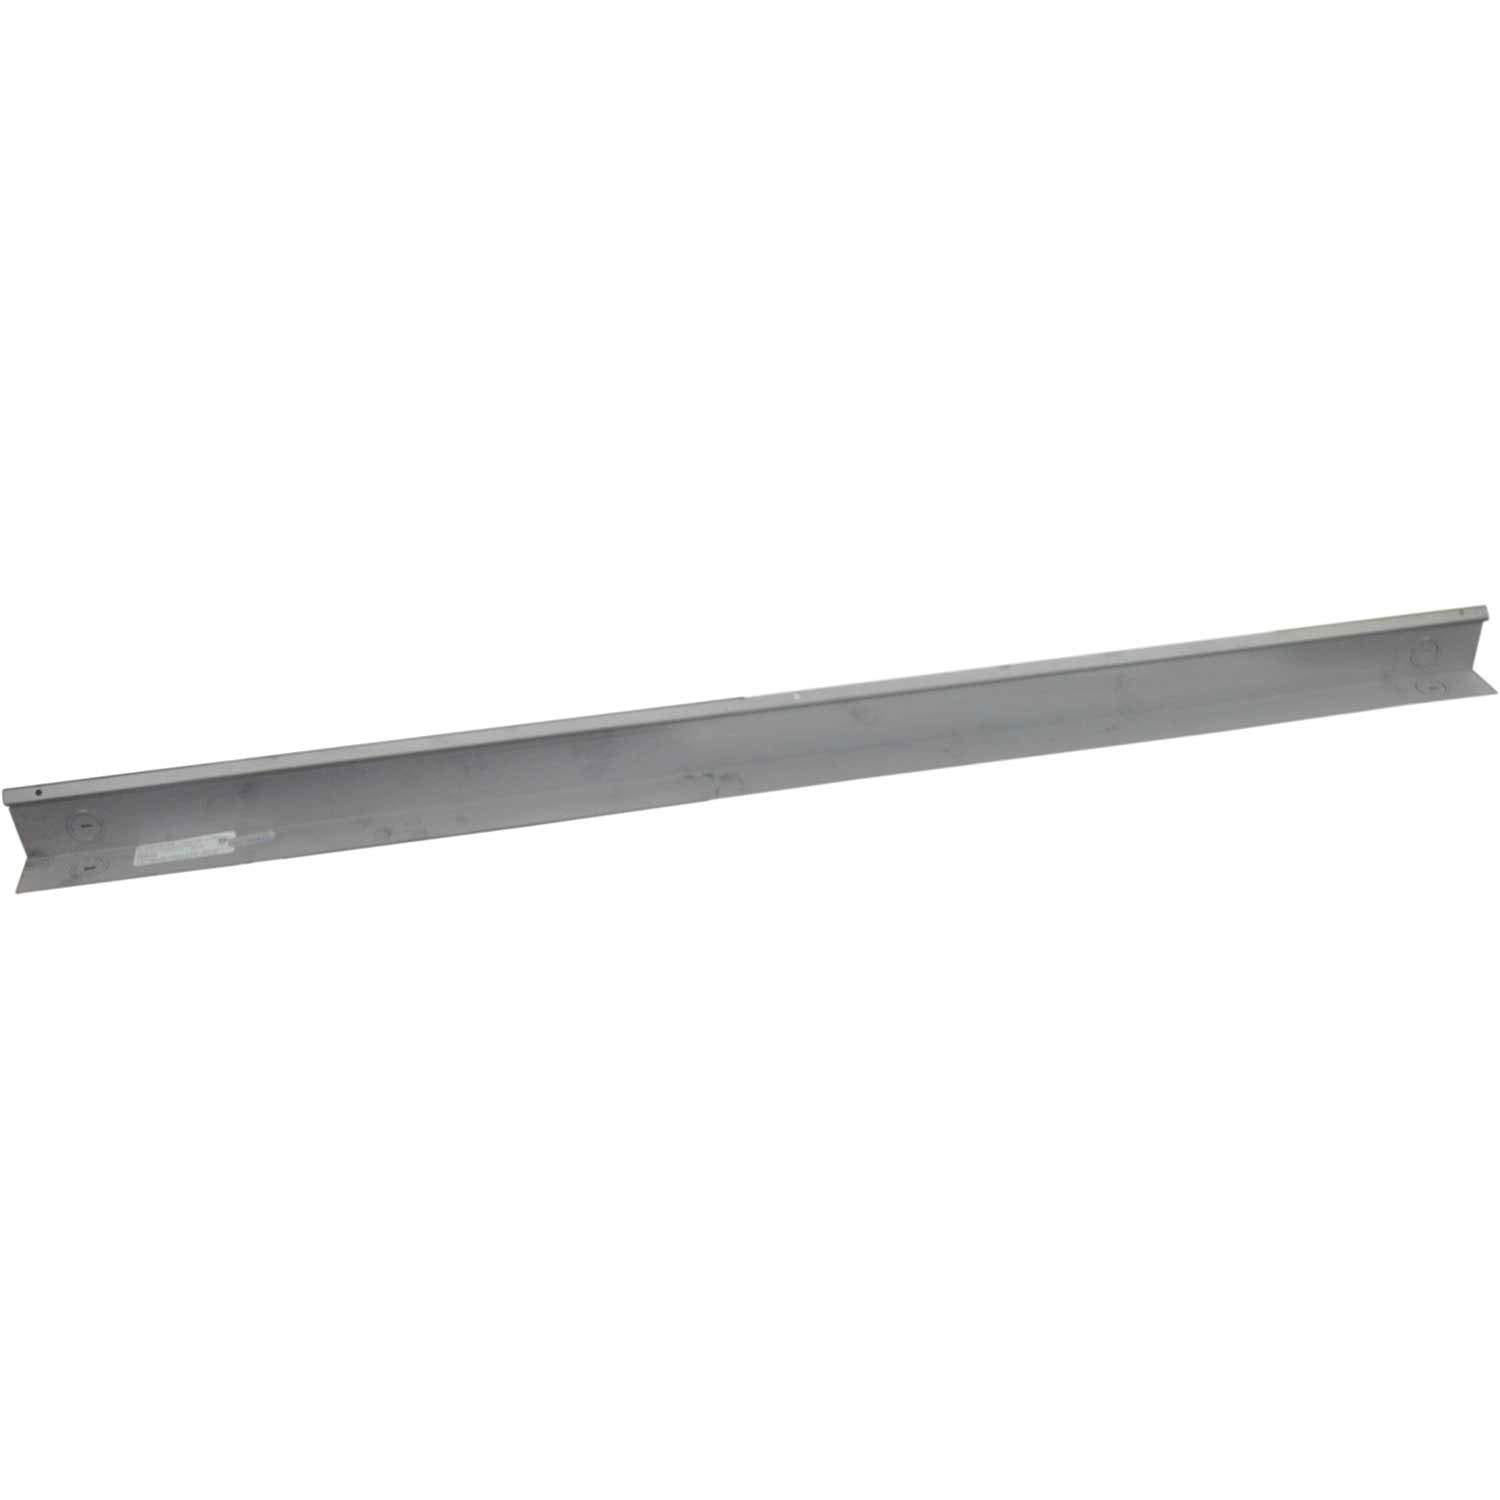 "TPI 36"" Wireway Cover for 3900 & 3700 Series Baseboard Heater - 3900WW36"